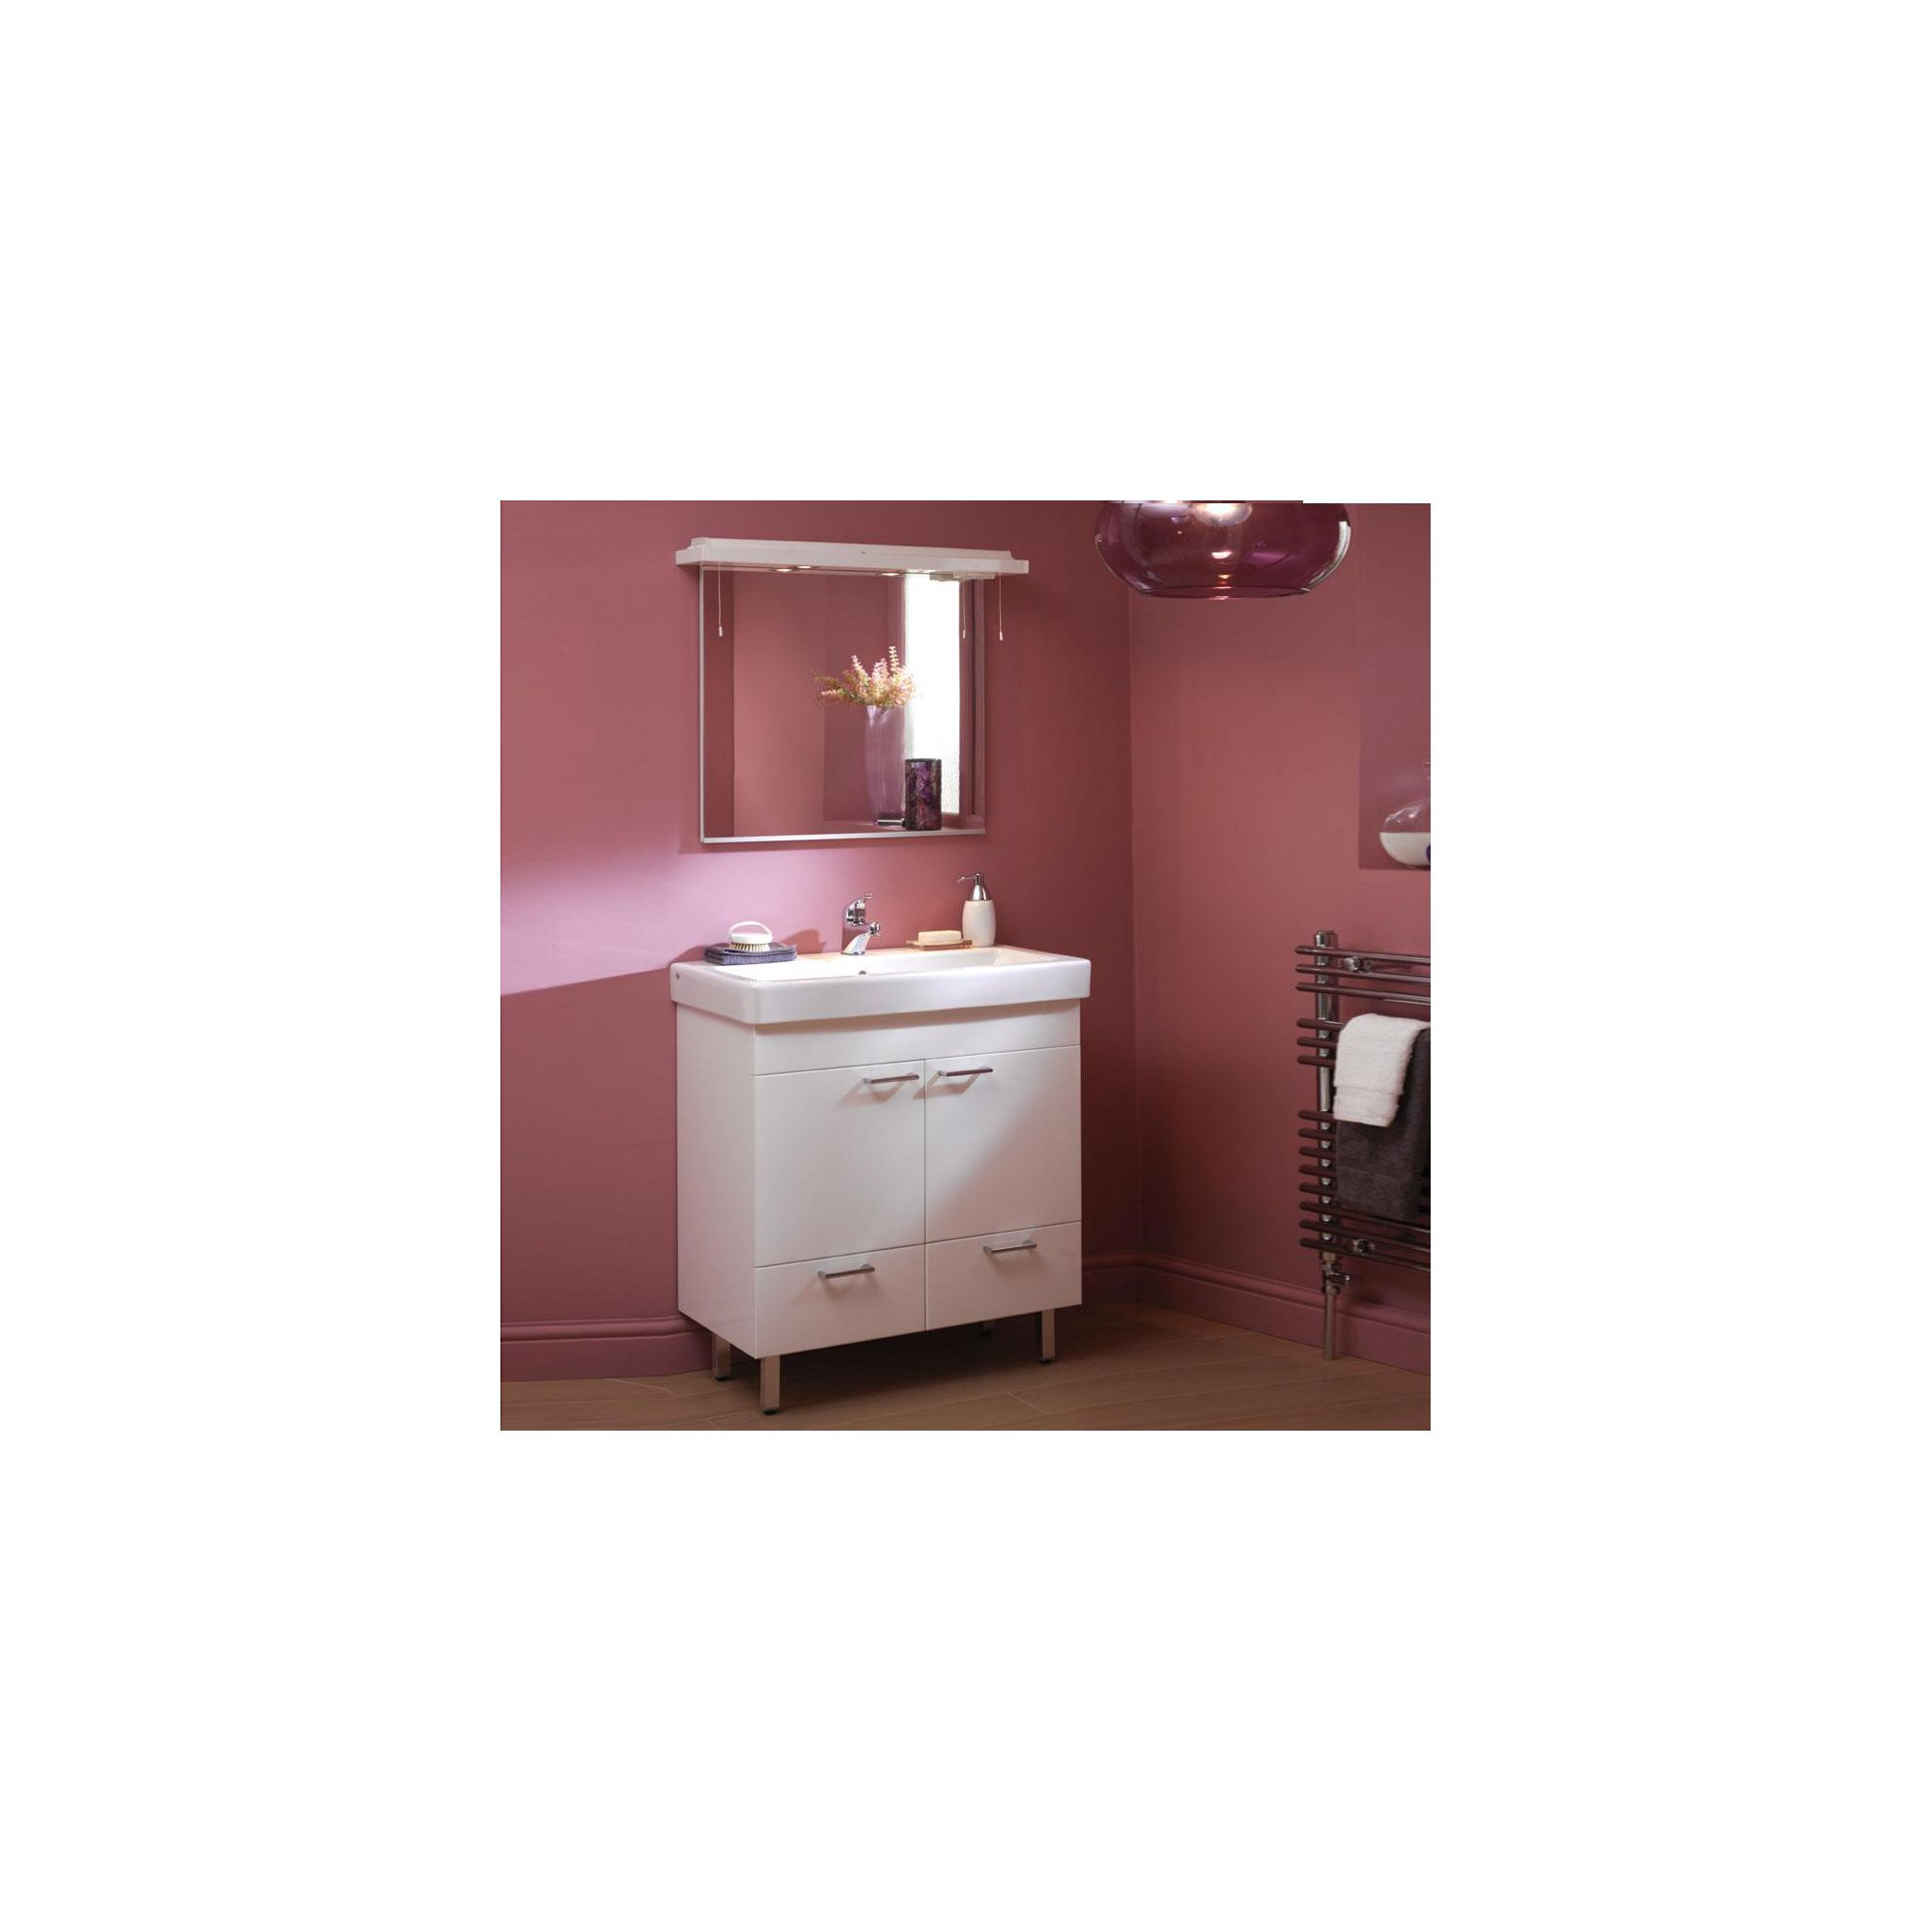 Duchy Trerise White Floor Standing 2 Door 2 Drawer Vanity Unit and Basin - 800mm Wide x 445mm Deep including Mirror and Cornice